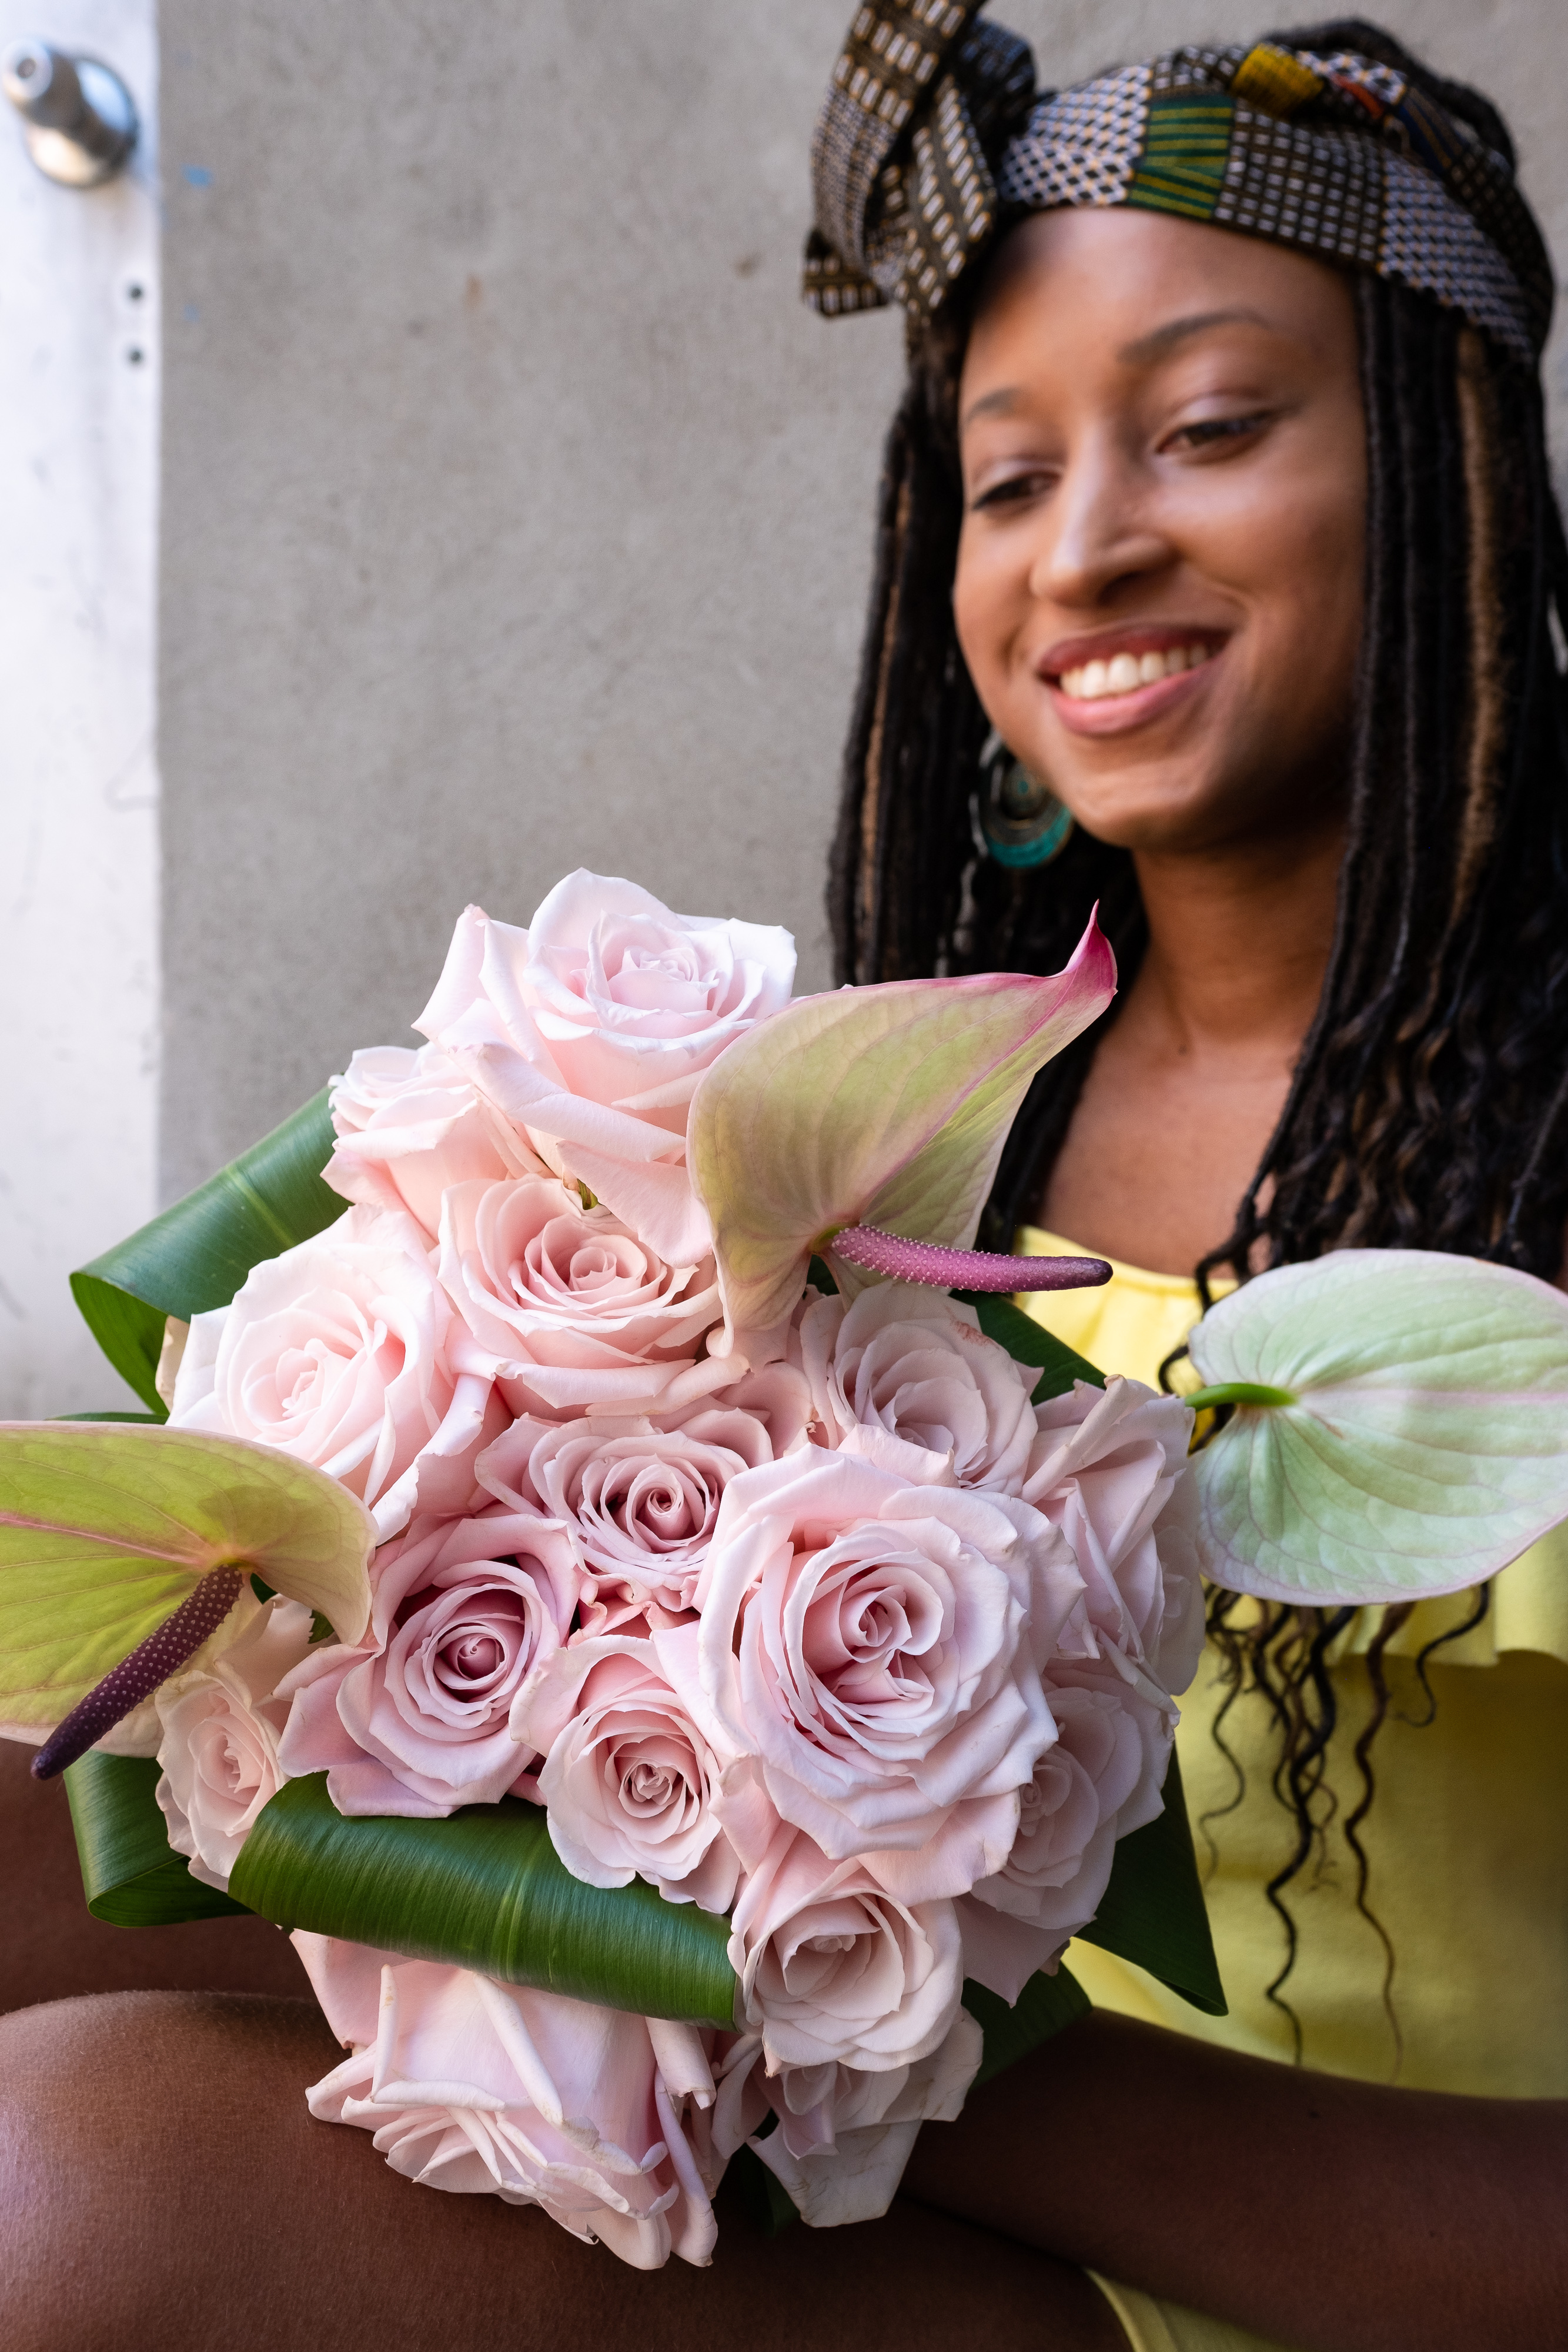 Beautiful, smiling woman wearing a brown headwrap with blocks of color throughout, looking down at beautiful pink roses.